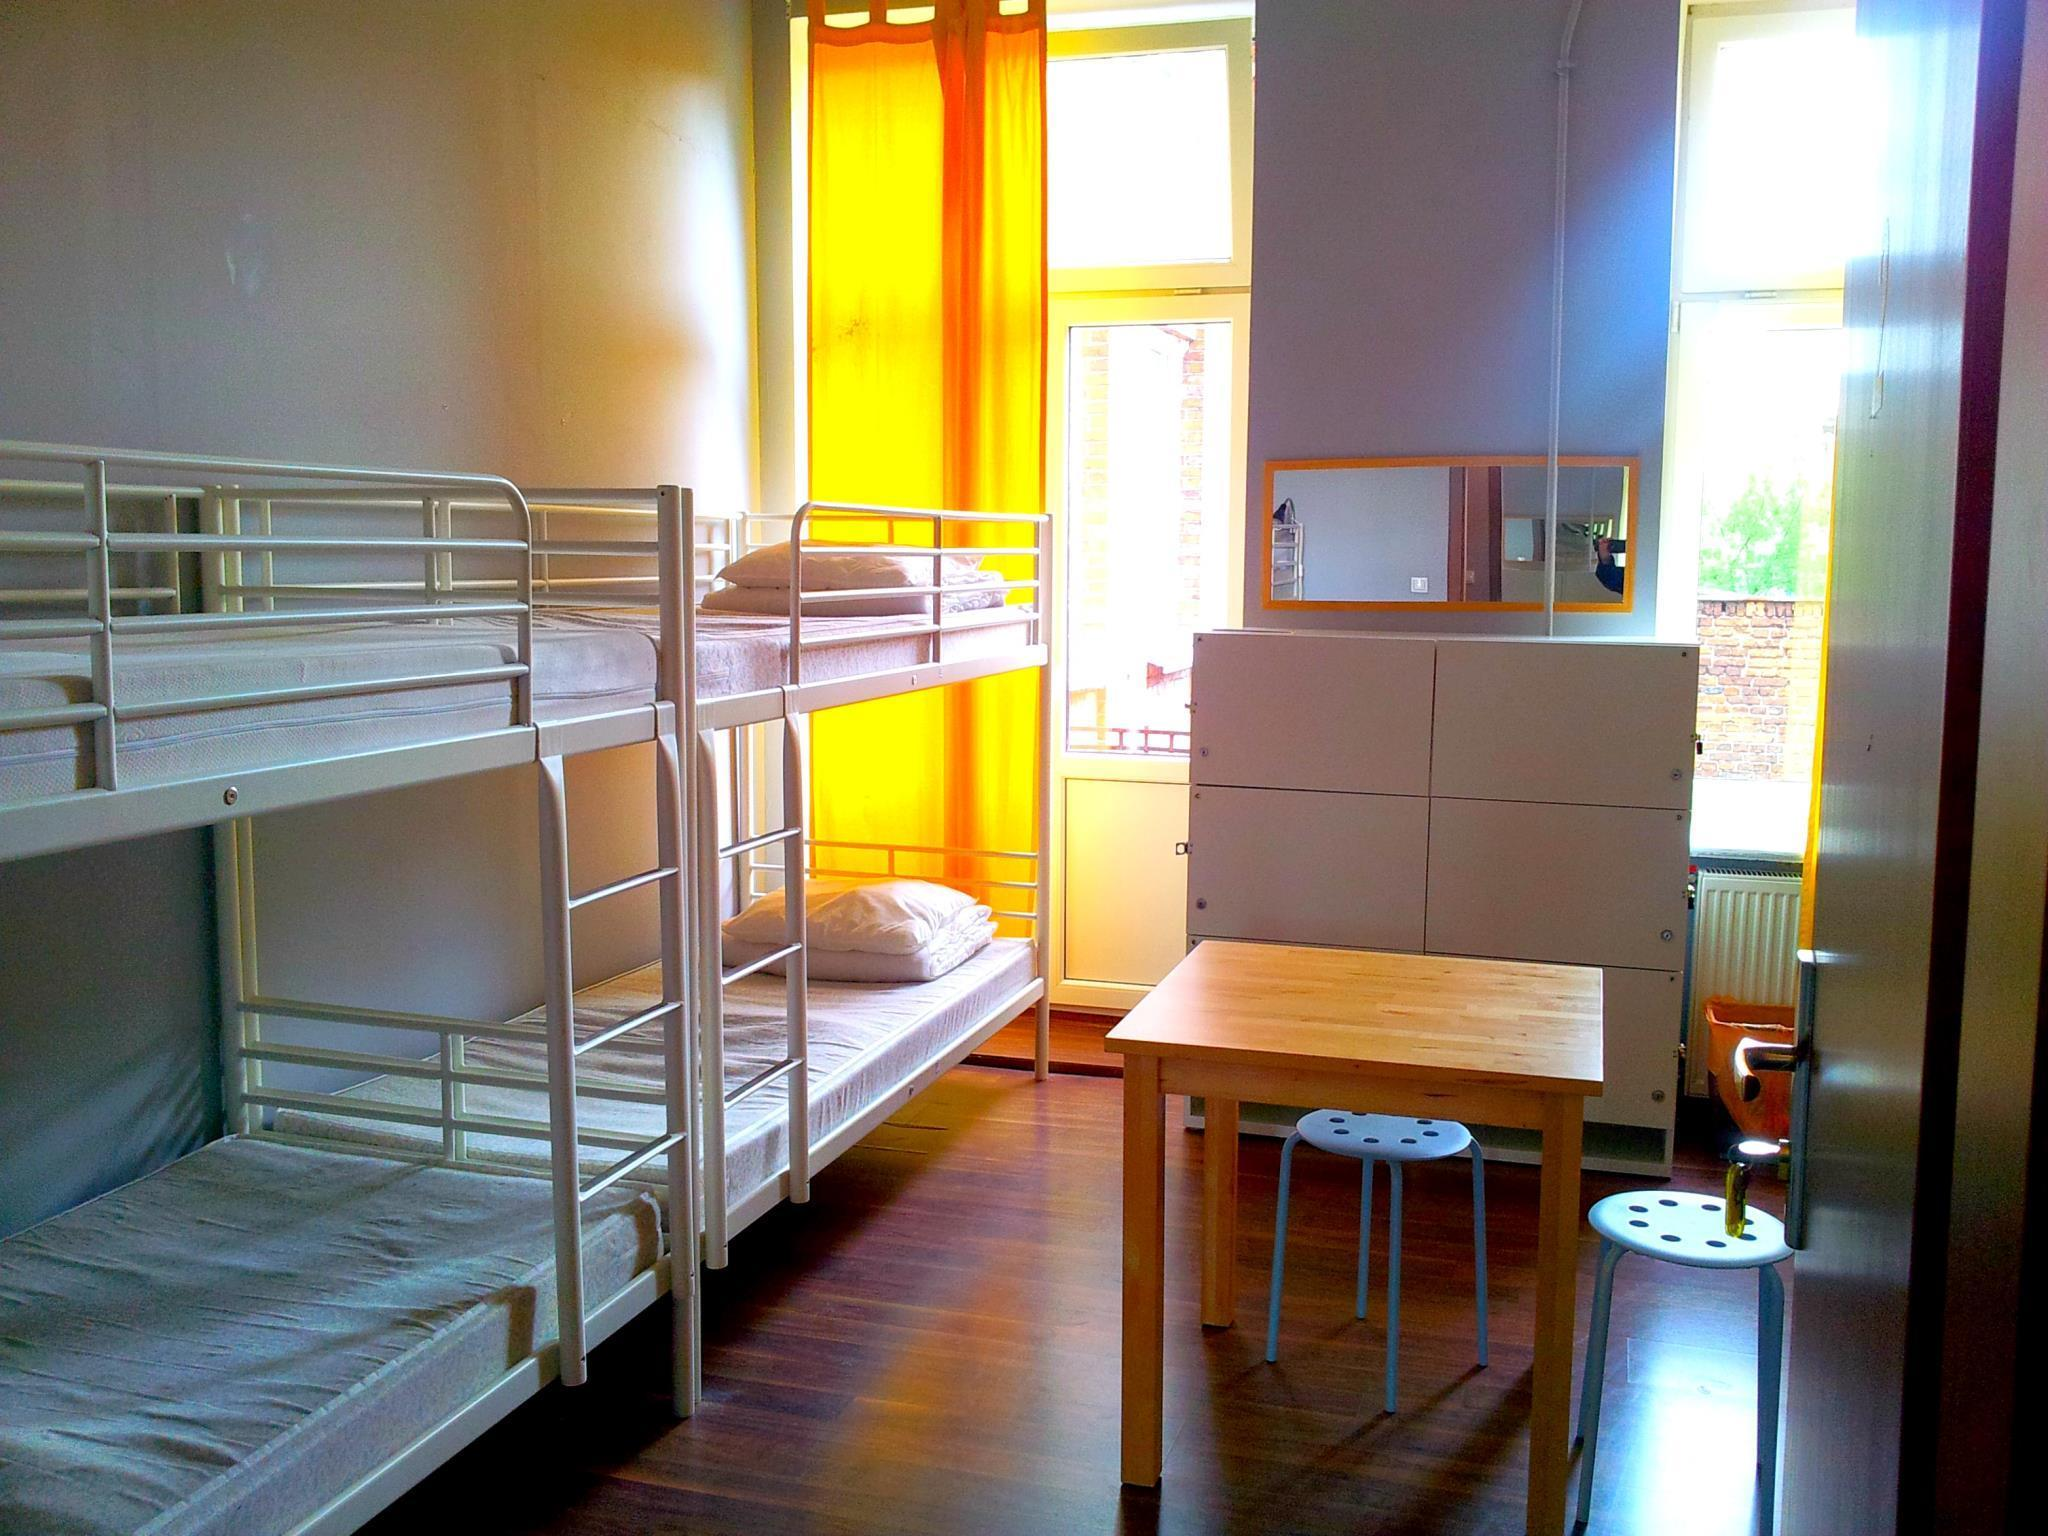 8 bedded mixed dorm